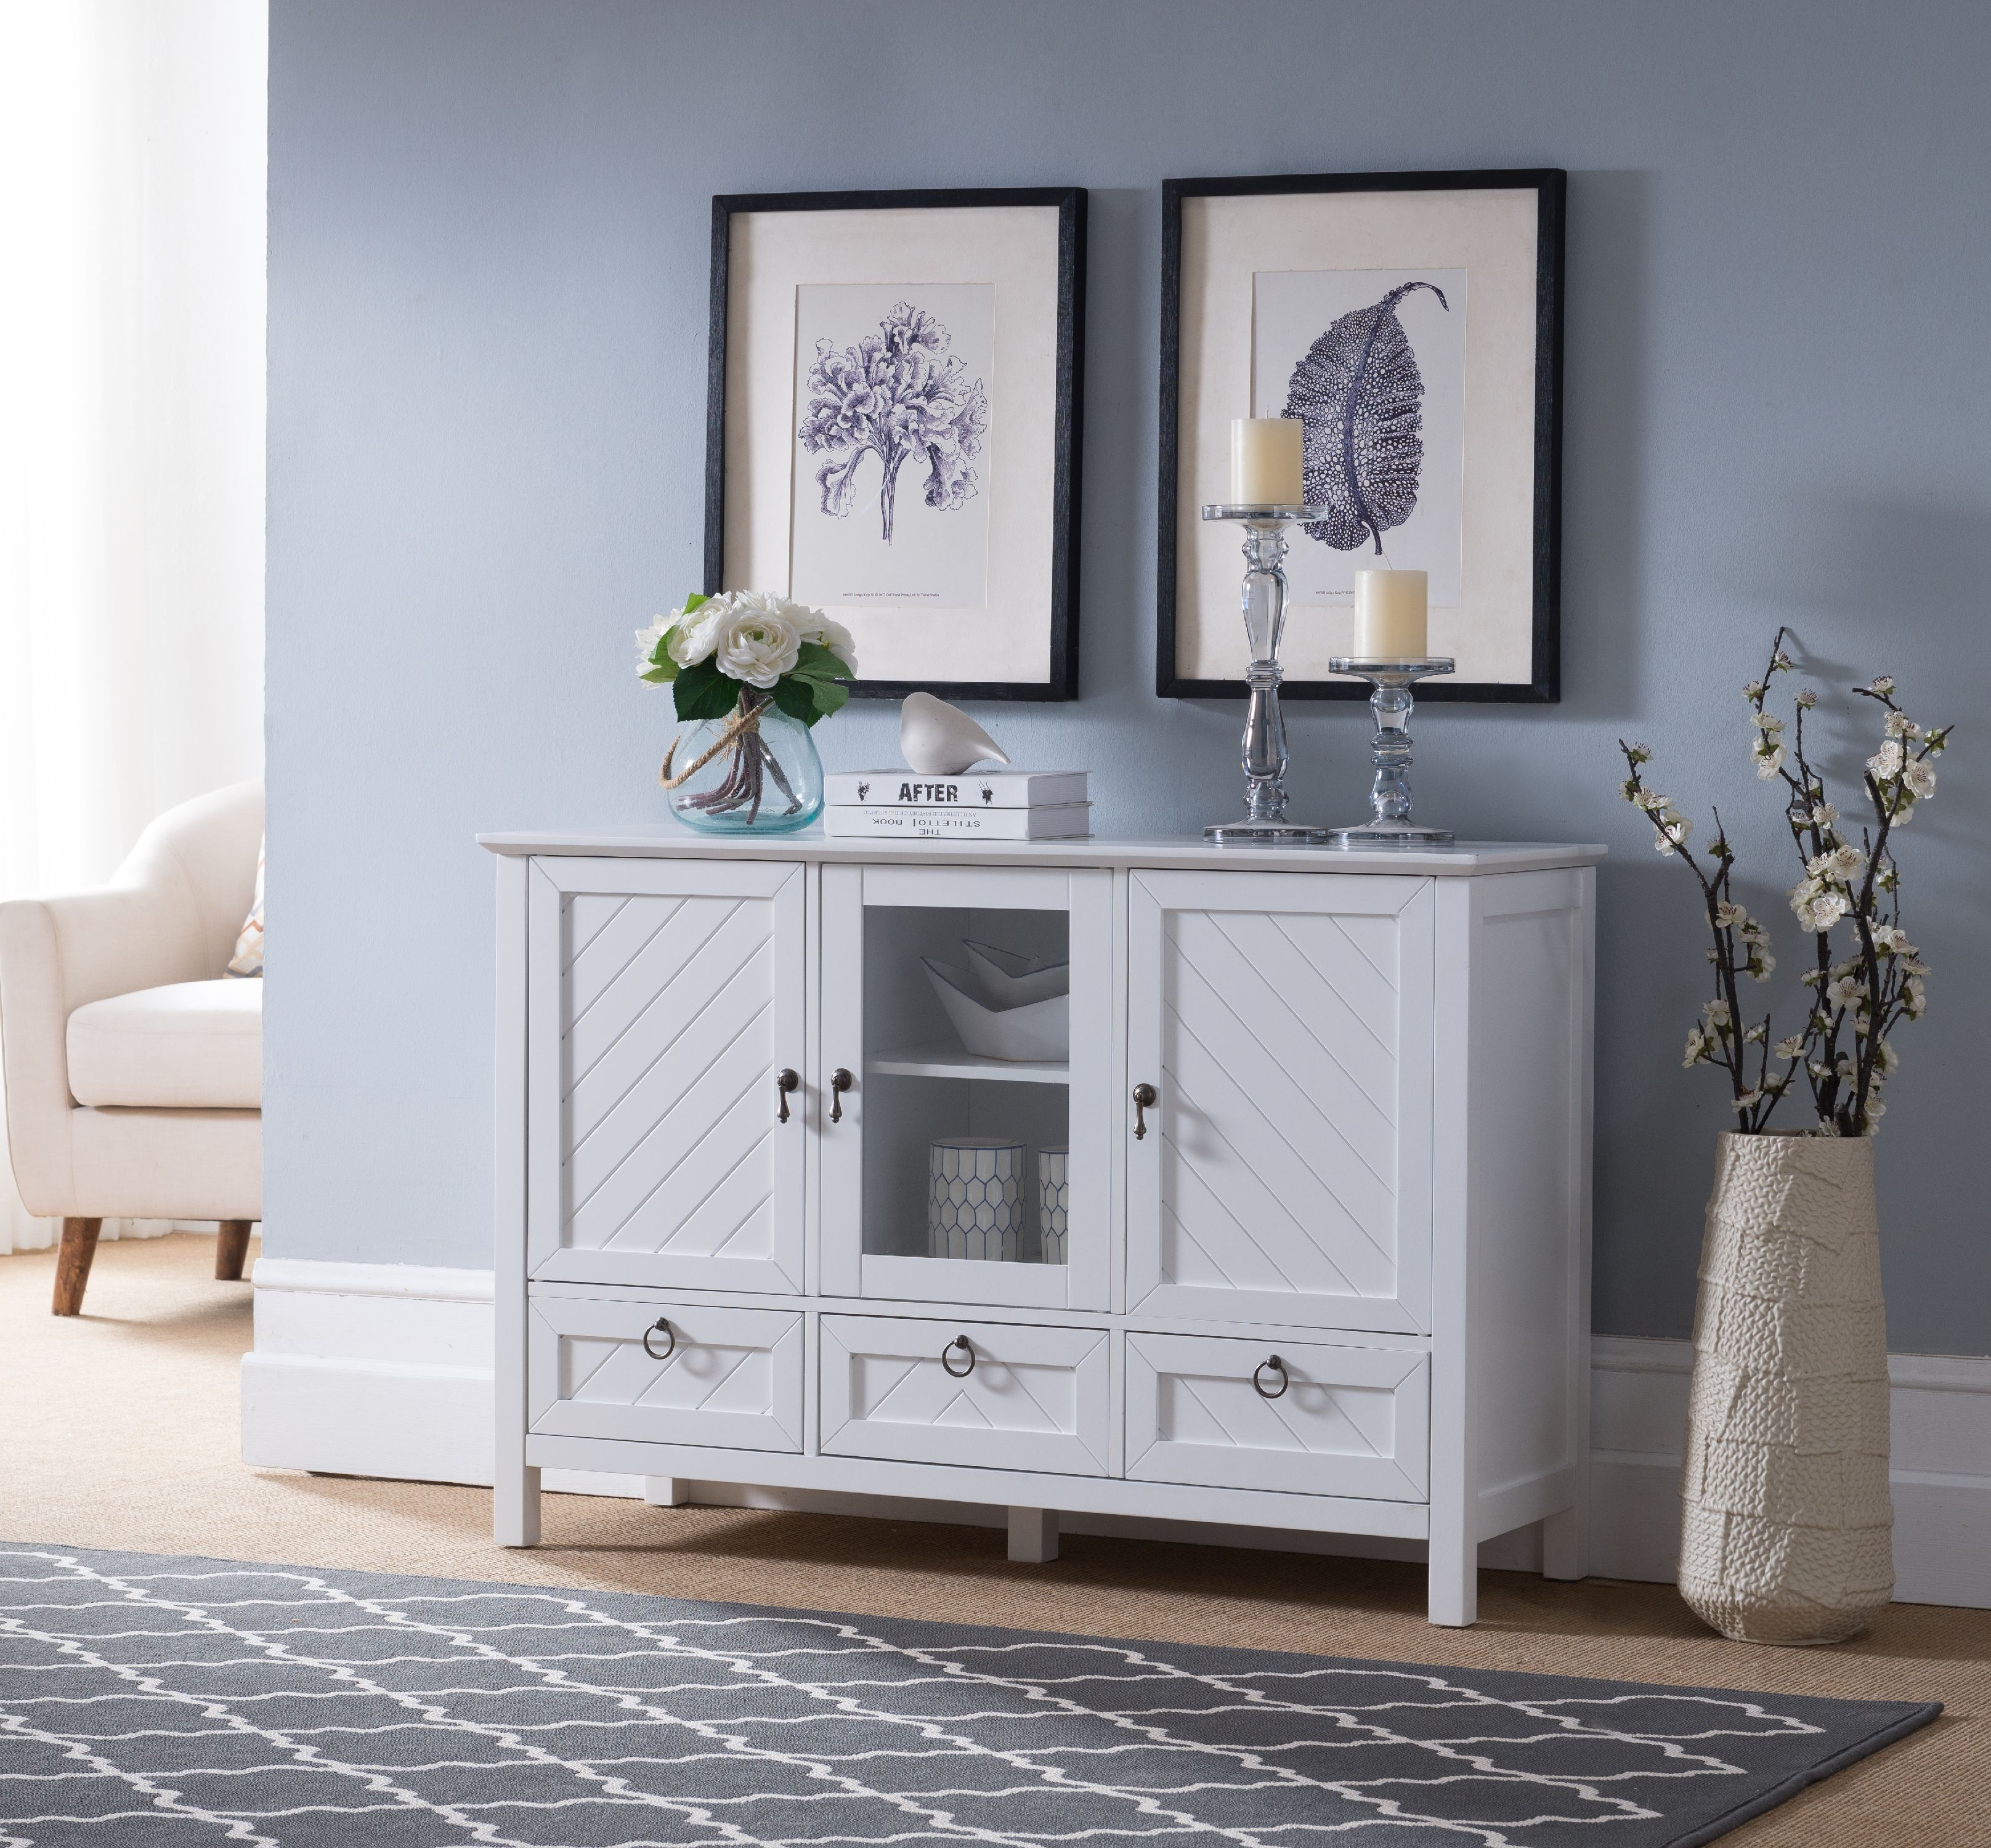 Newport Contemporary Sideboard Buffet Console Table With Storage Cabinets,  Drawers U0026 Shelves, White, Wood U0026 Glass   Walmart.com